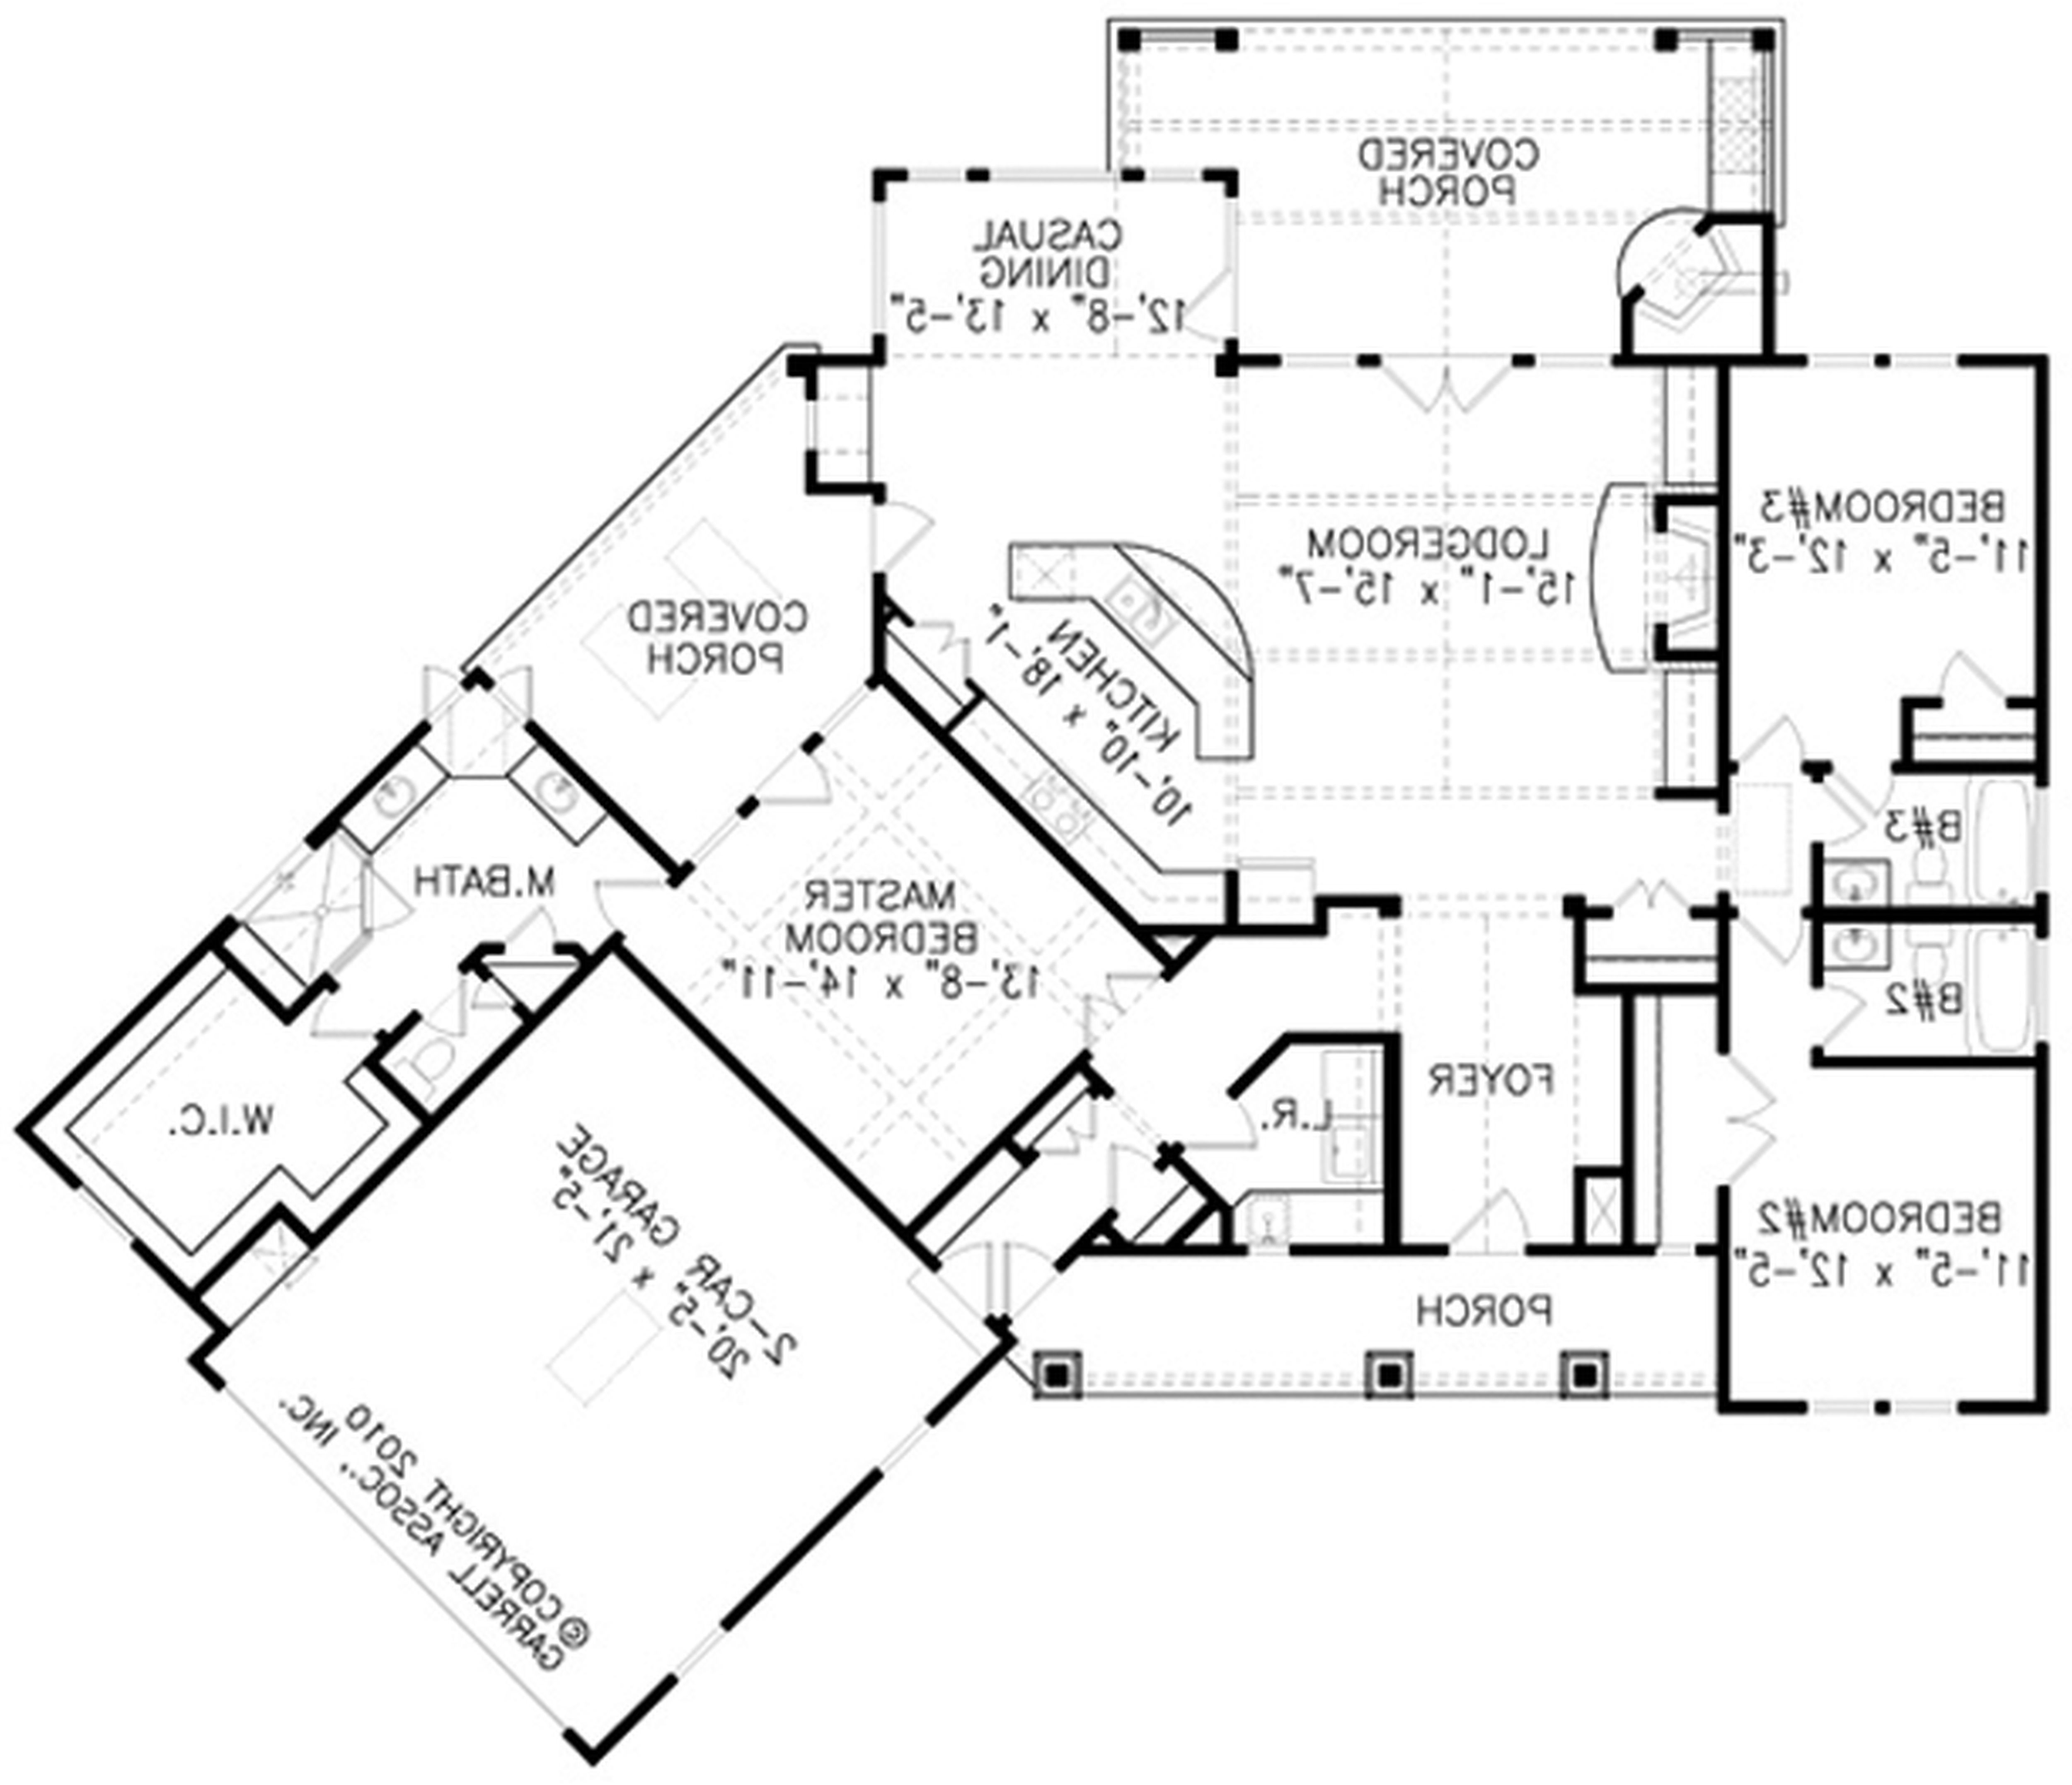 Home Design Clever Simple Modern Contemporary Tropical Home With Open Living Space Interior Design F Unique House Plans Floor Plan Design House Plans One Story